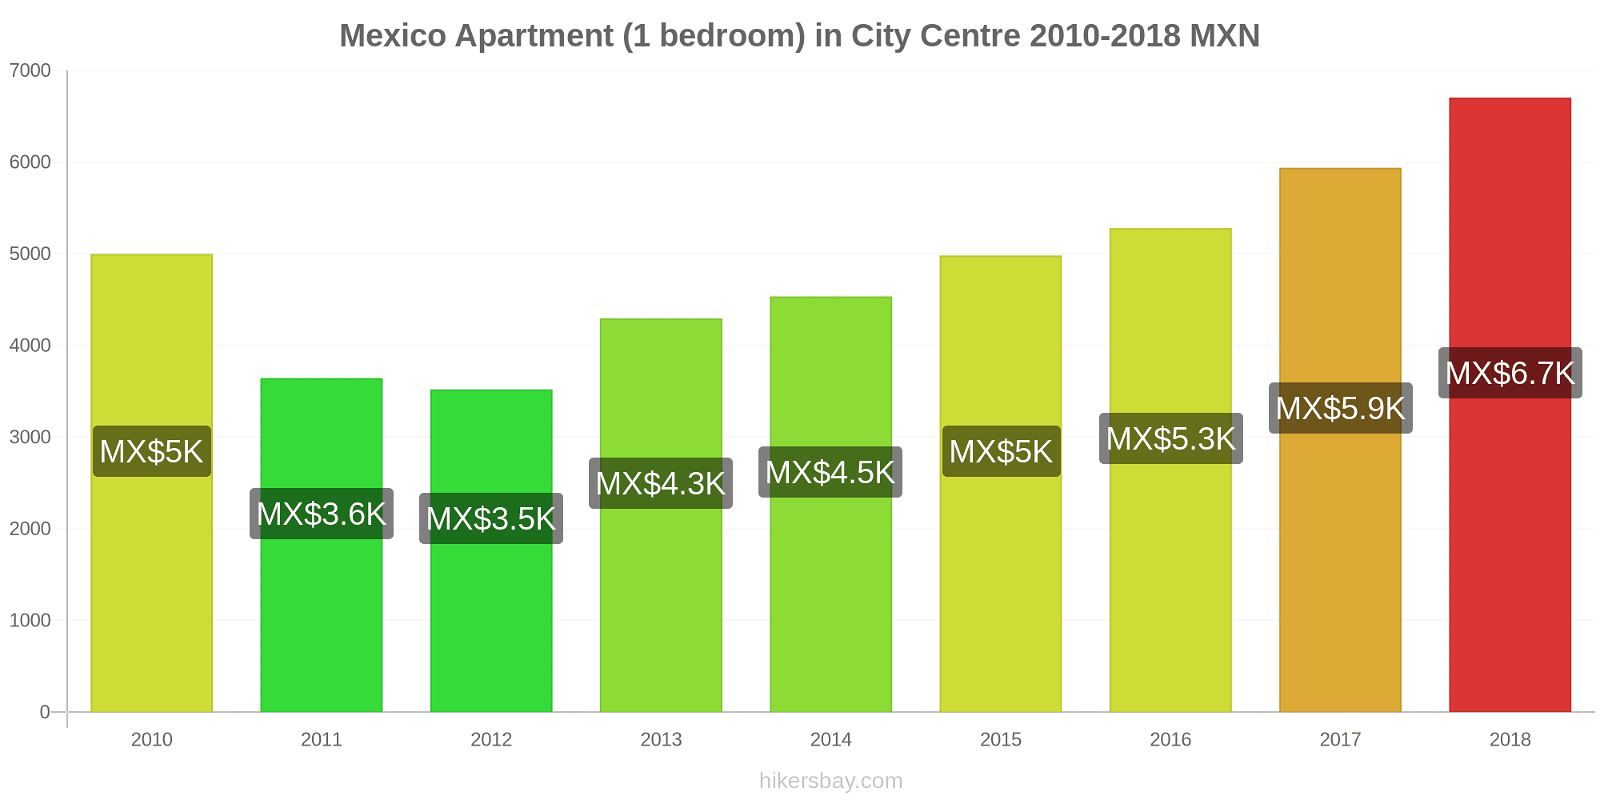 Mexico price changes Apartment (1 bedroom) in City Centre hikersbay.com